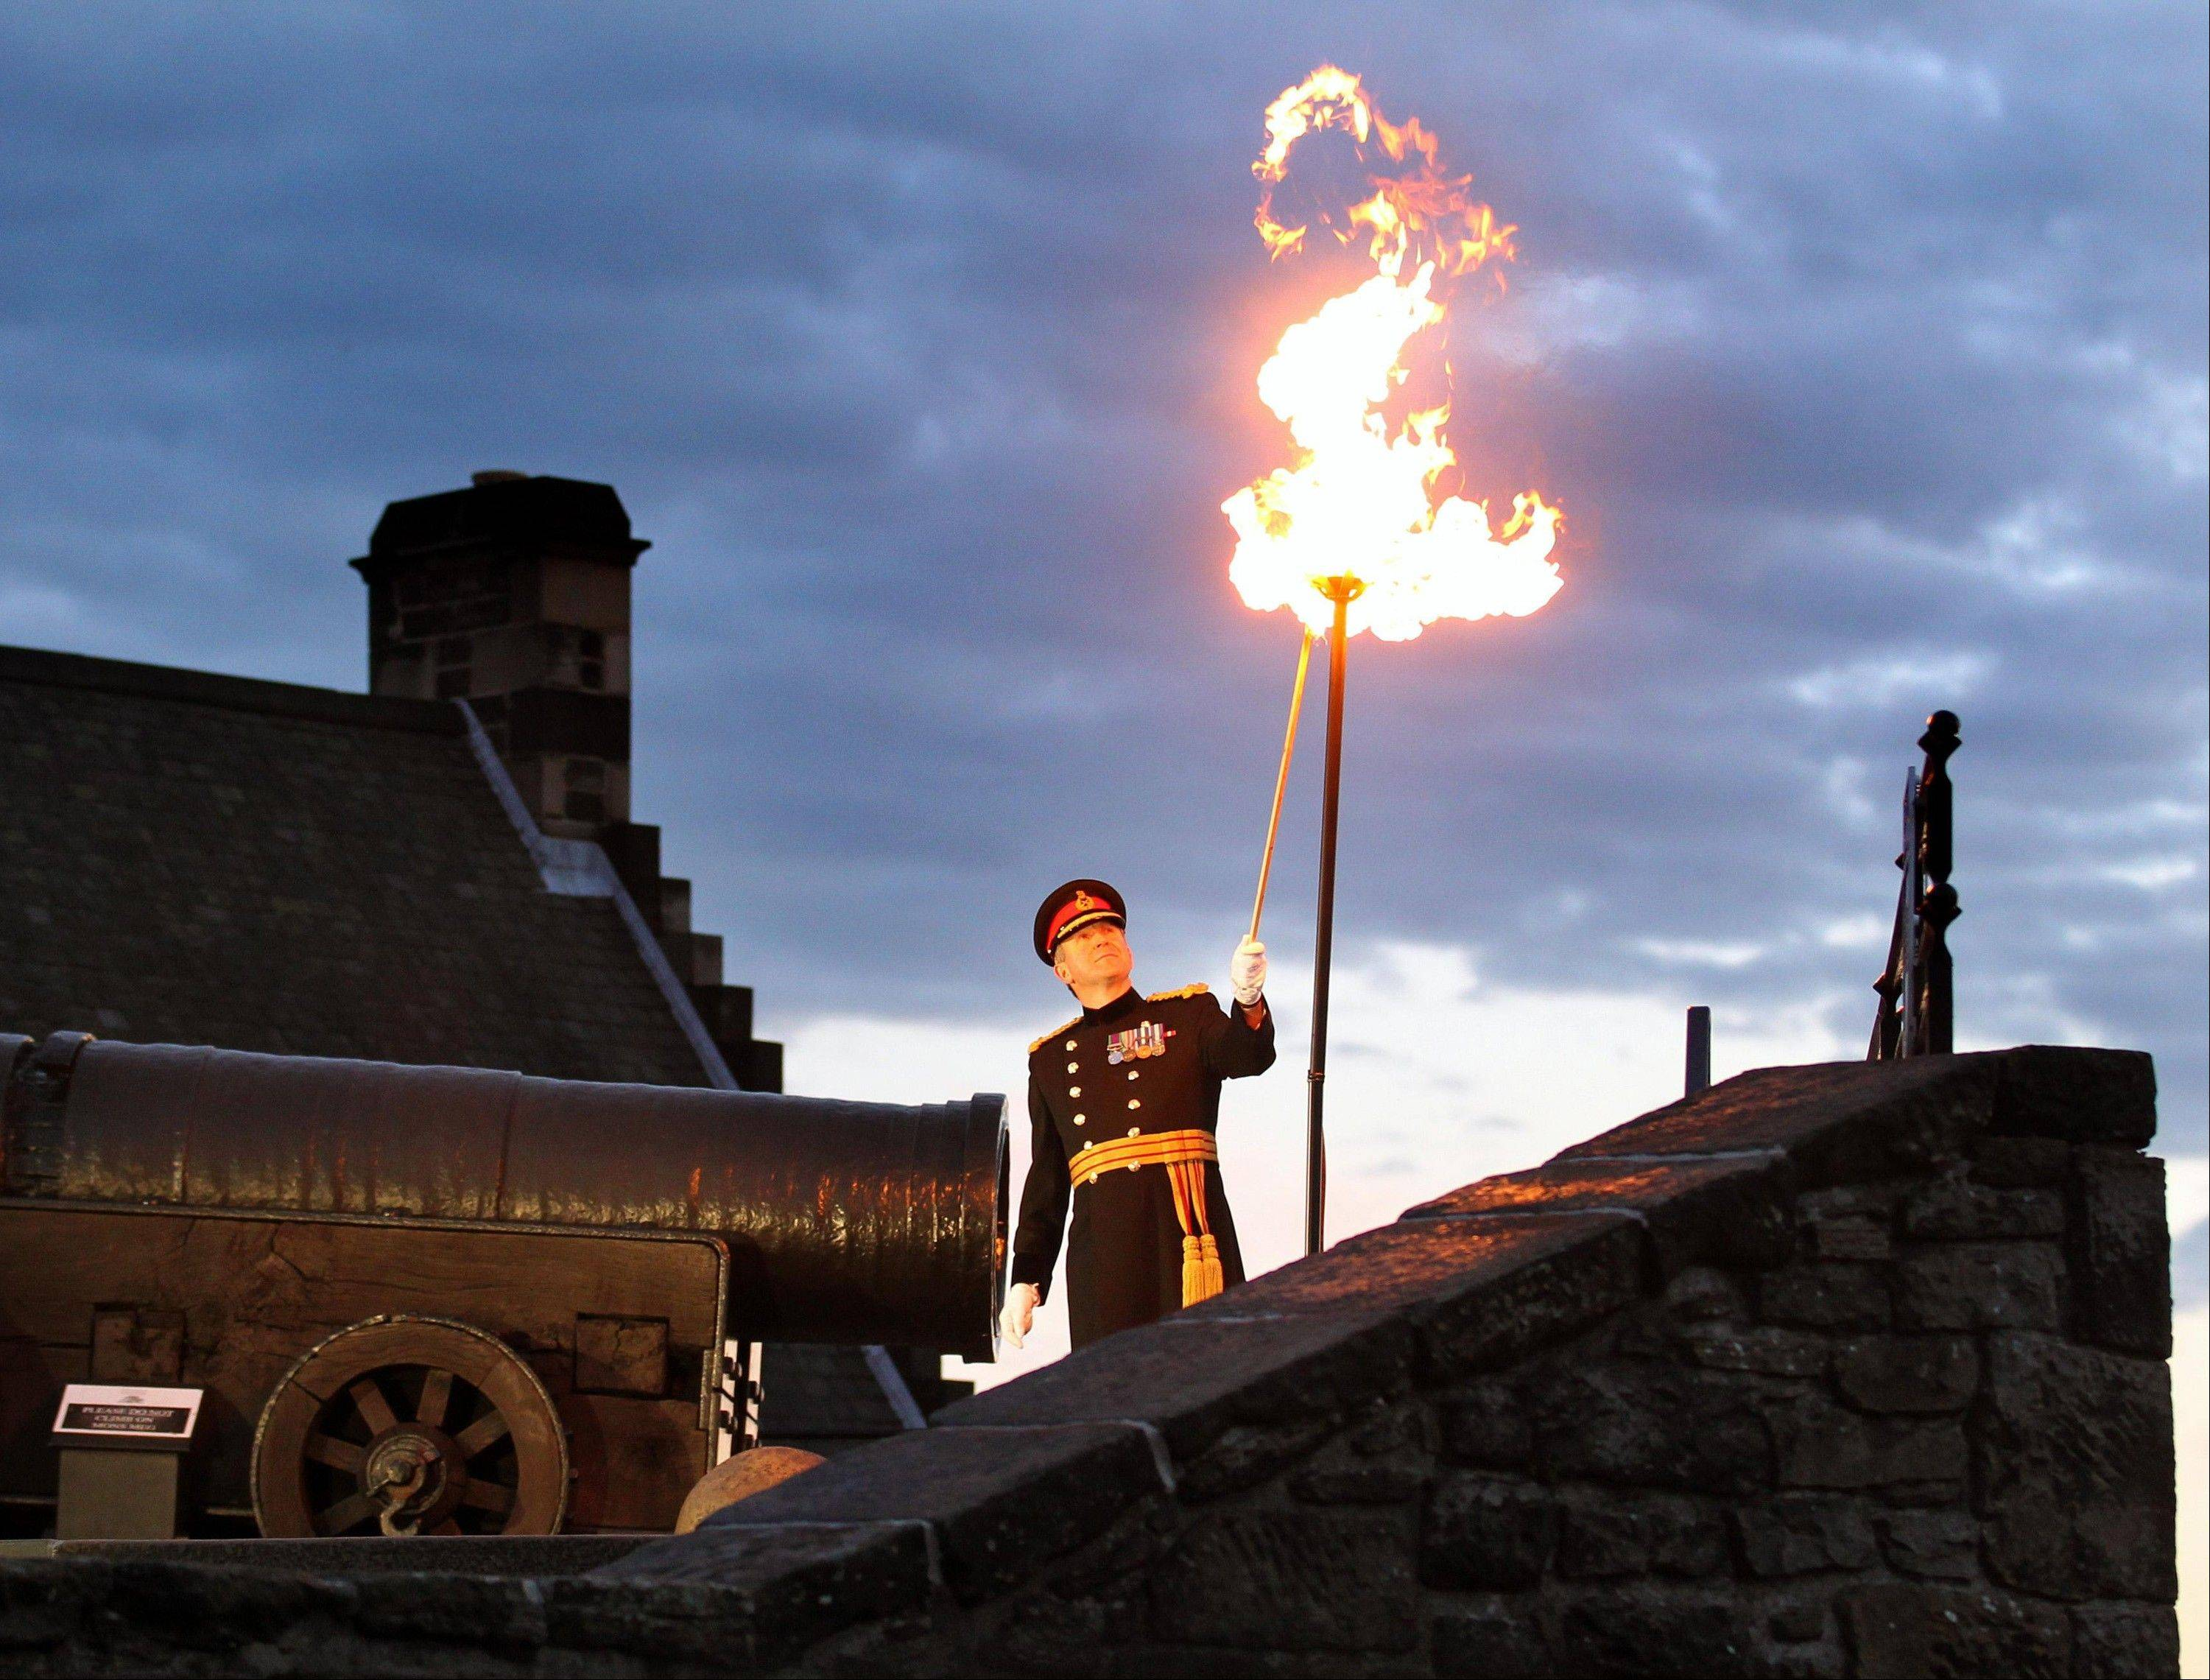 Major General Nick Eeles, Governor of Edinburgh Castle and General Officer Commanding Scotland, lights the Diamond Jubilee beacon at Edinburgh Castle beside Mons Meg Cannon in Edinburgh, Monday June 4, 2012.